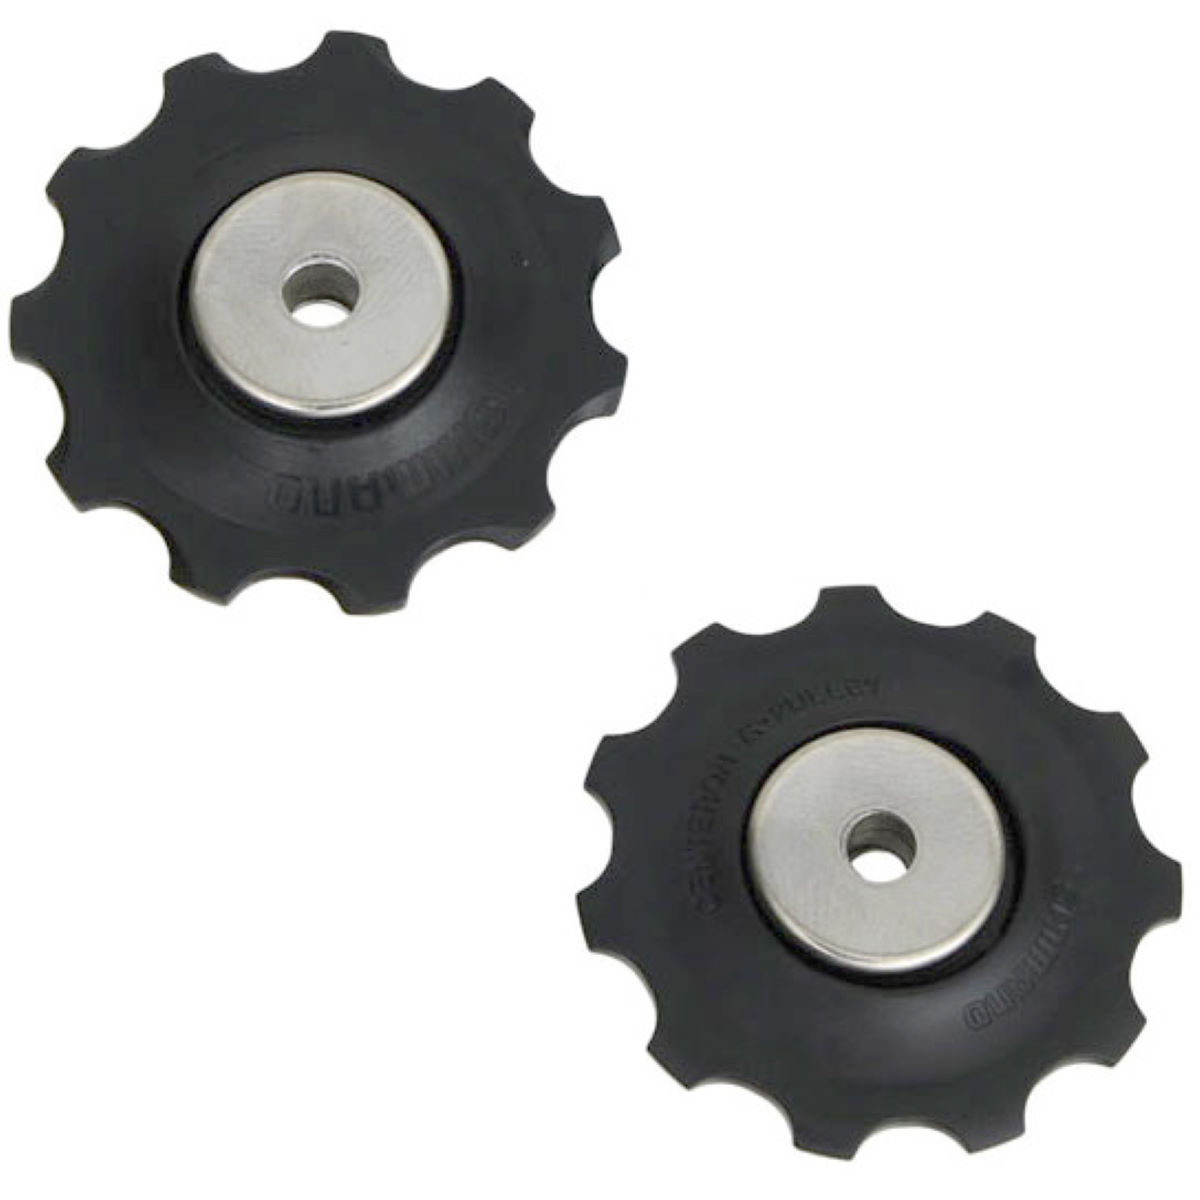 Galets Shimano 105 RD-5700 Tension and Guide (paire) - 11T Noir